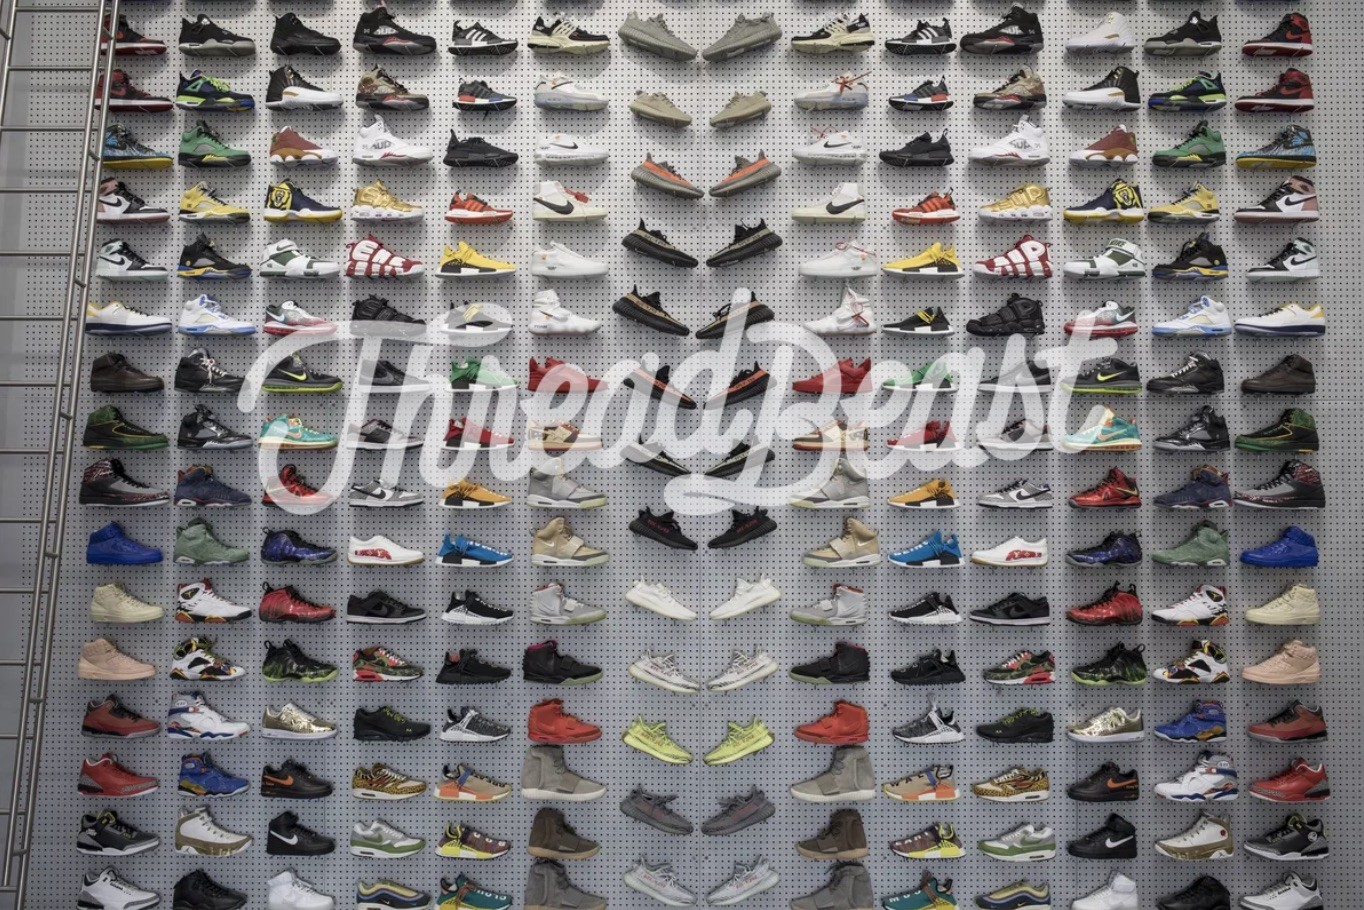 Top 5 Nikes of All Time